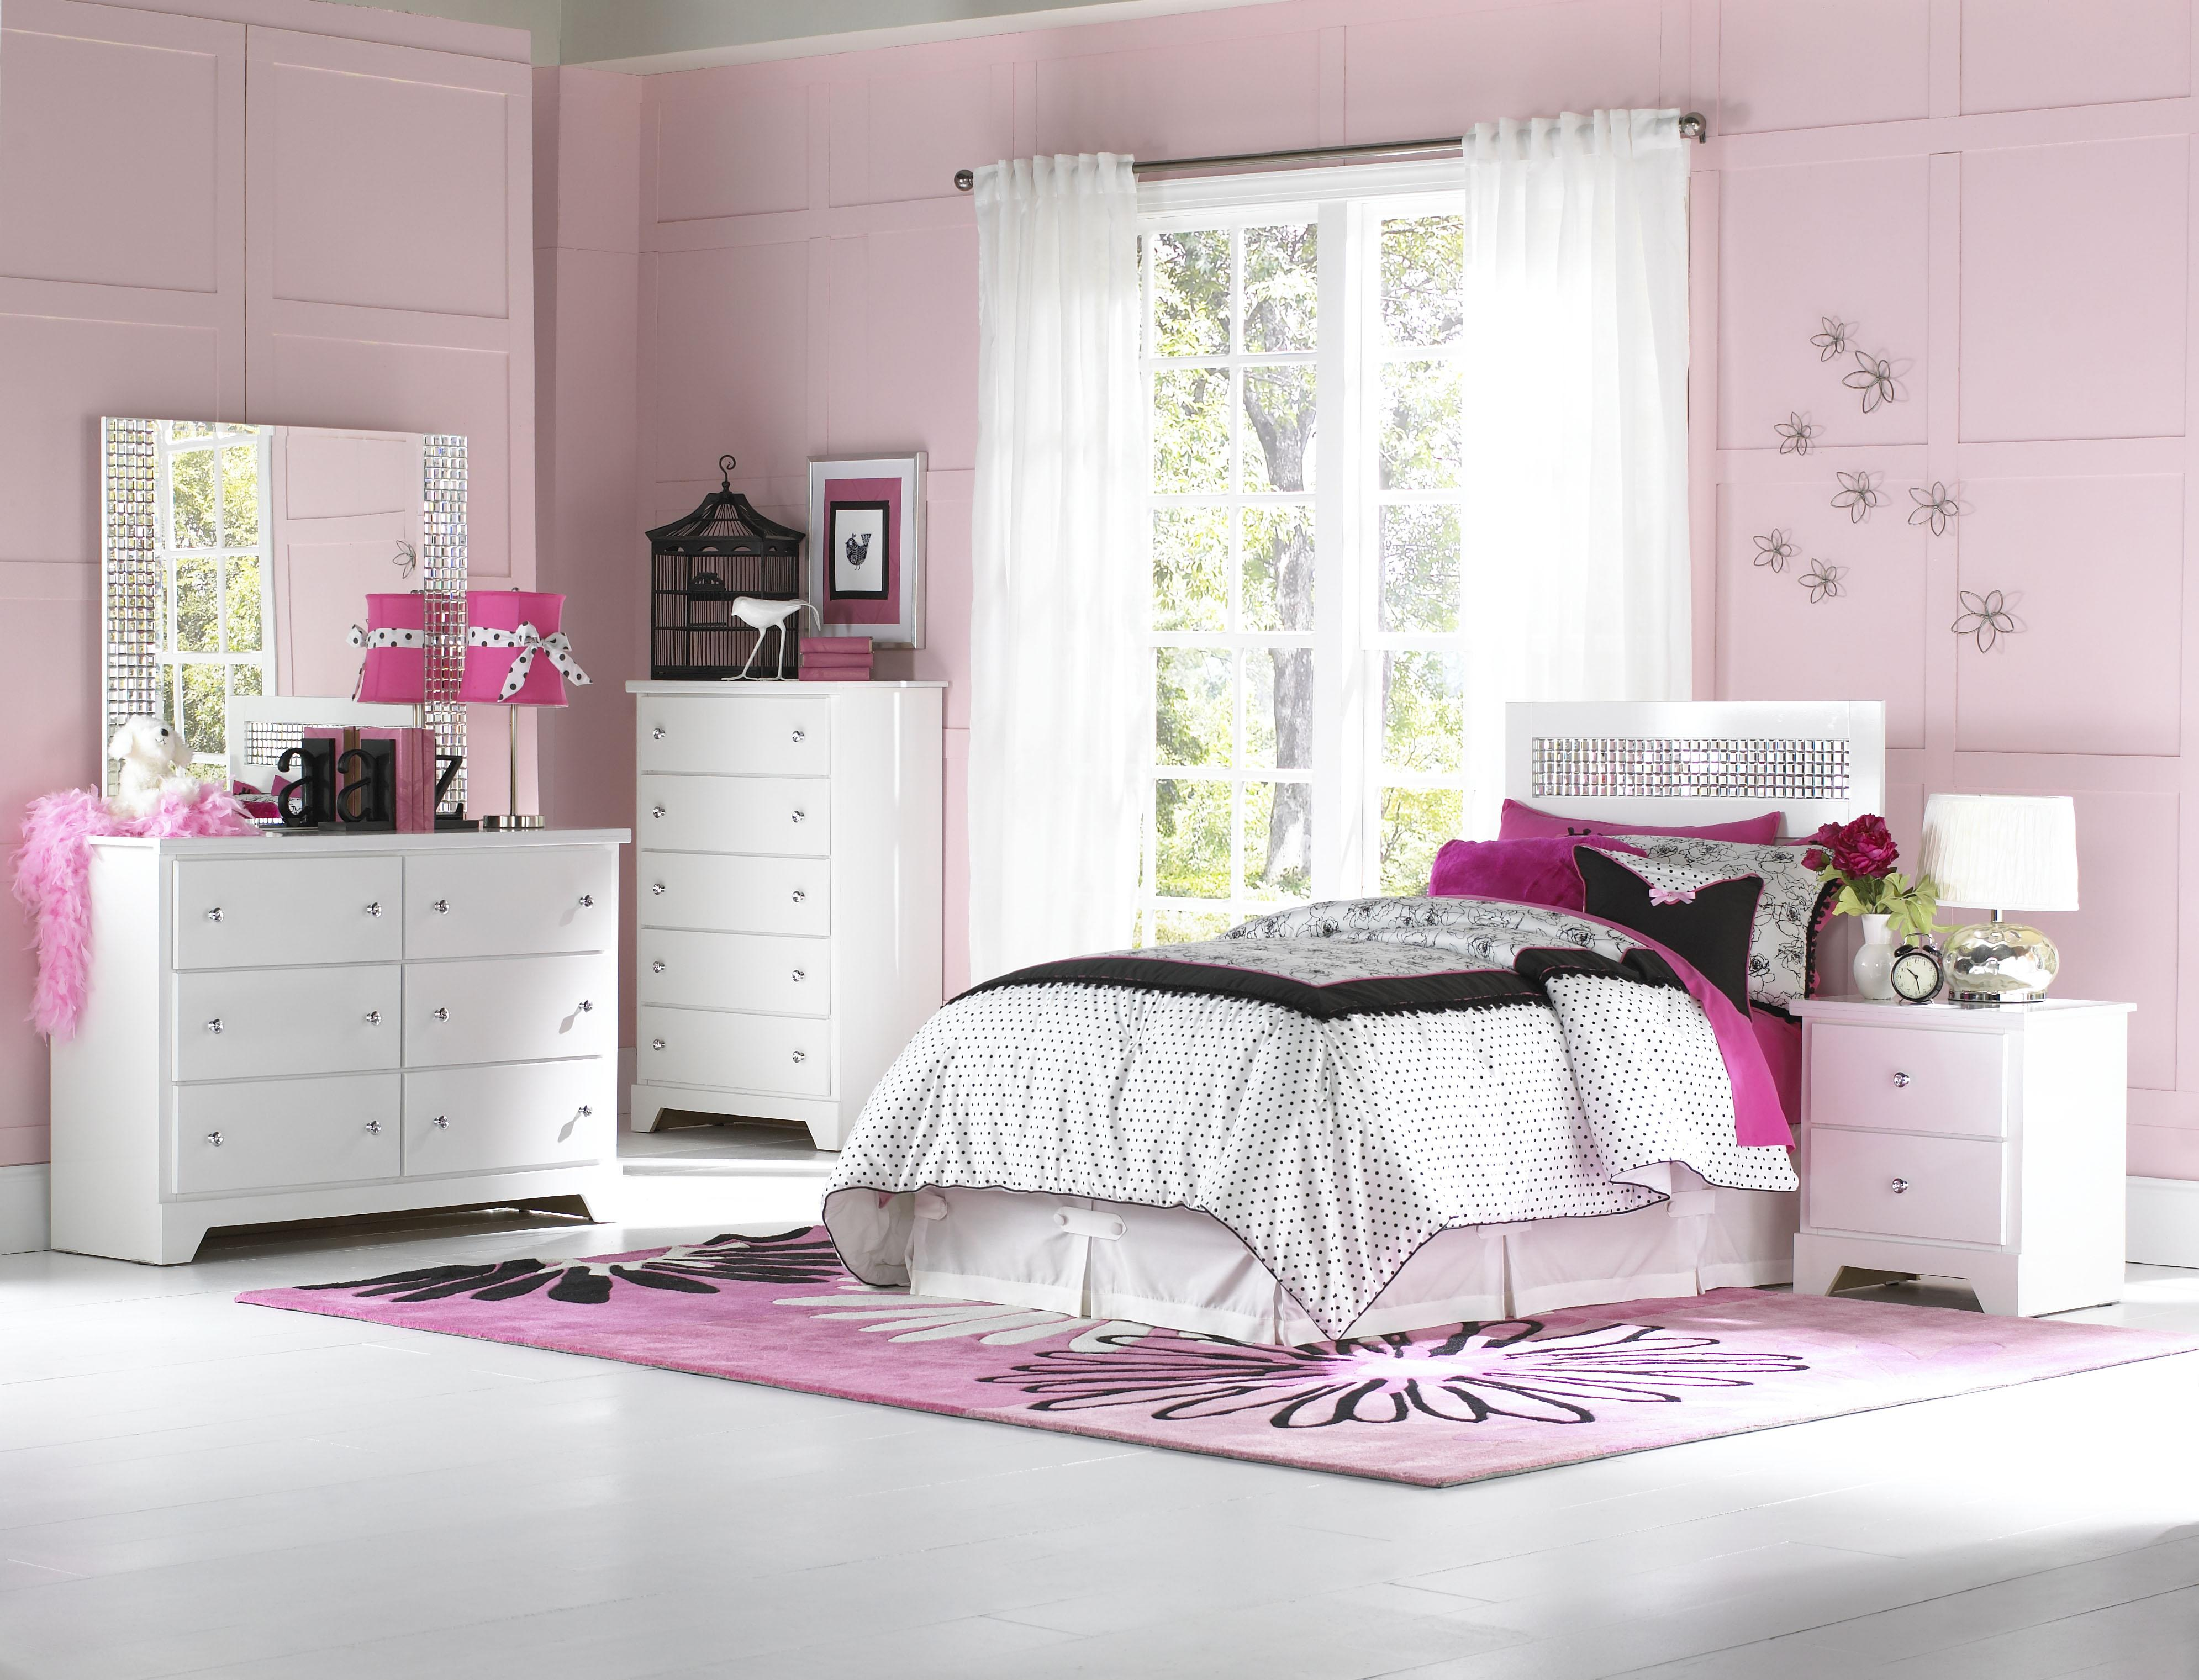 Standard Furniture Marilyn Youth Twin Bedroom Group - Item Number: 66300 T Bedroom Group 1